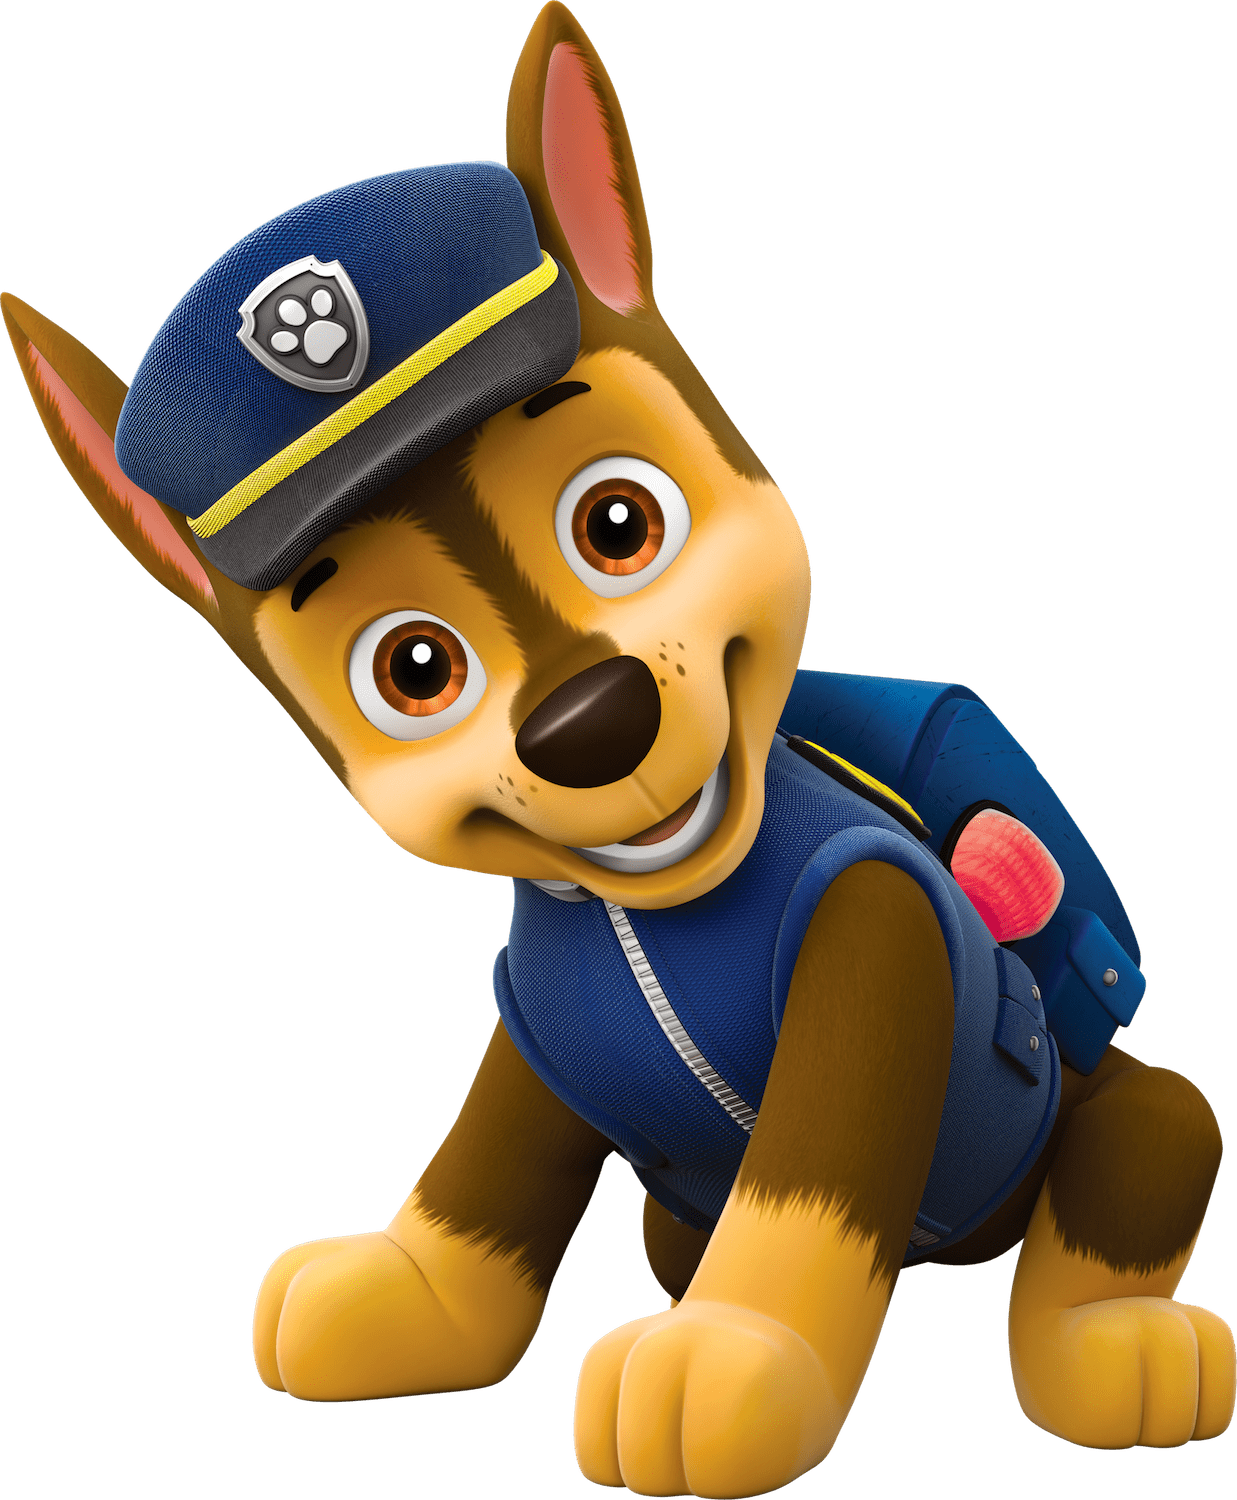 Paw patrol clipart png. Chase